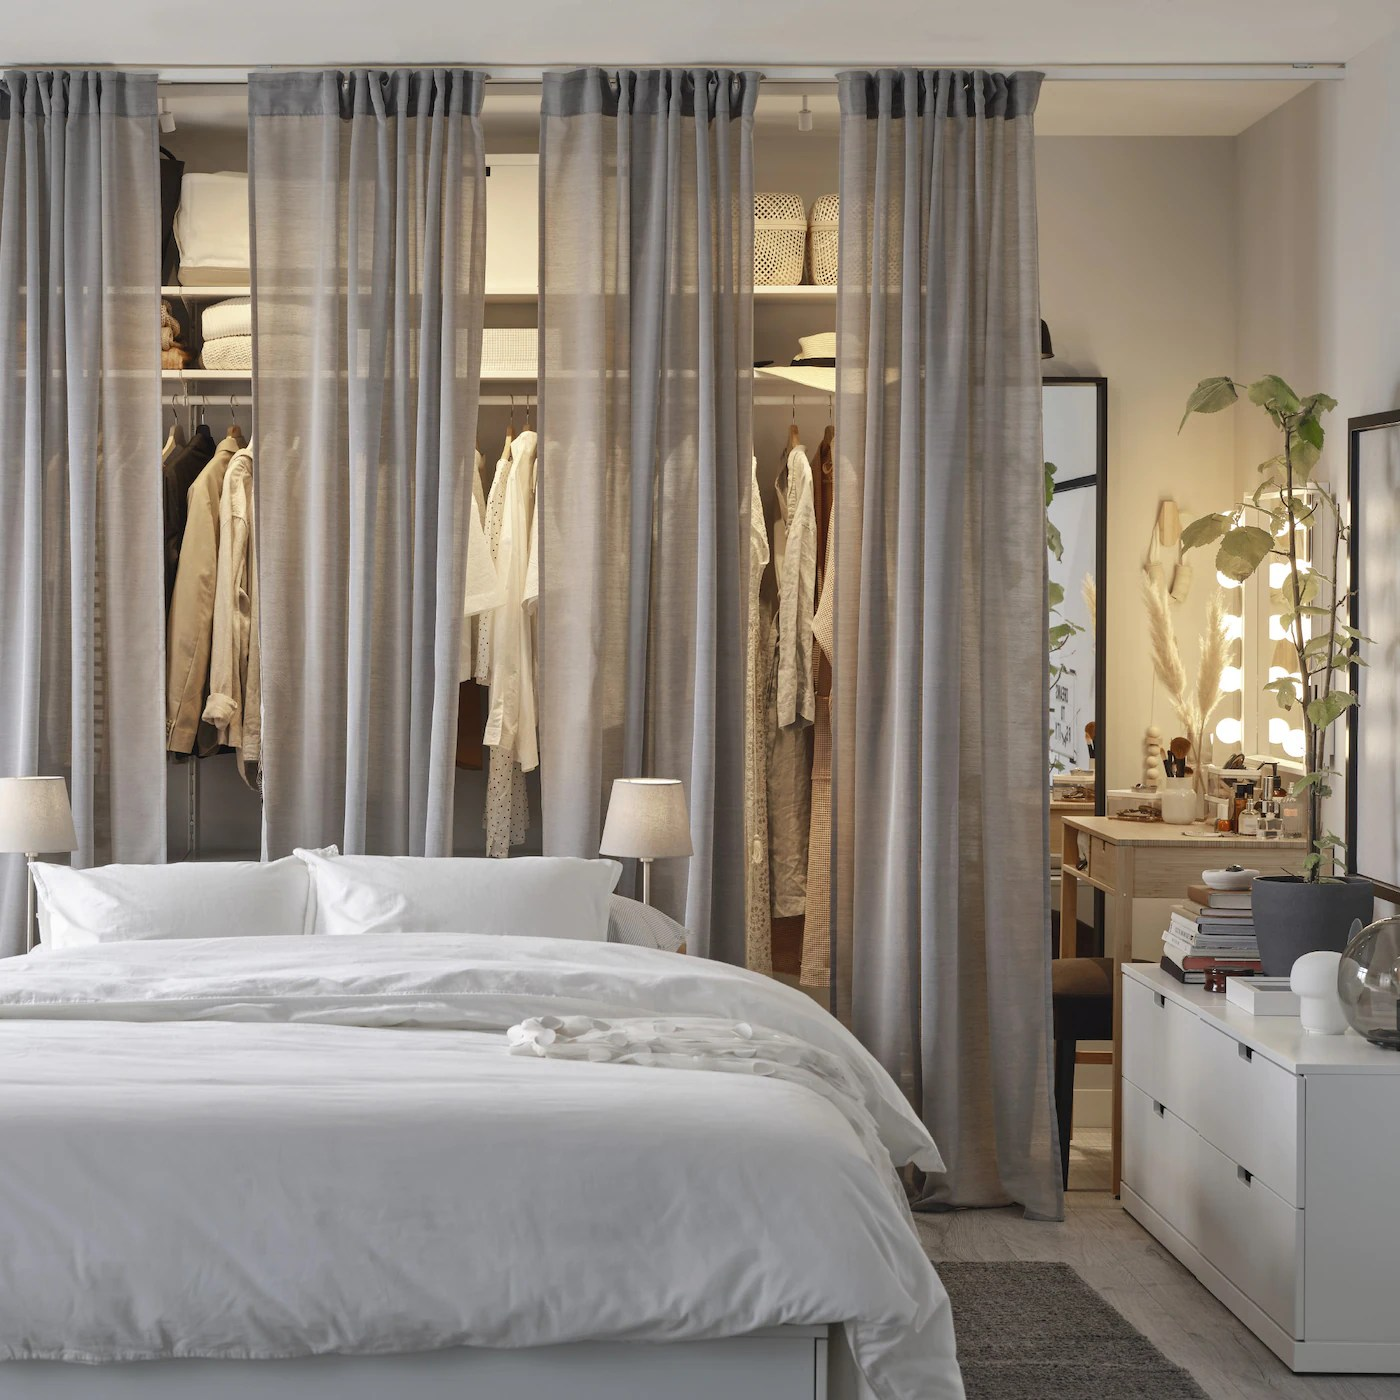 Bedroom Design Gallery Uae Ikea